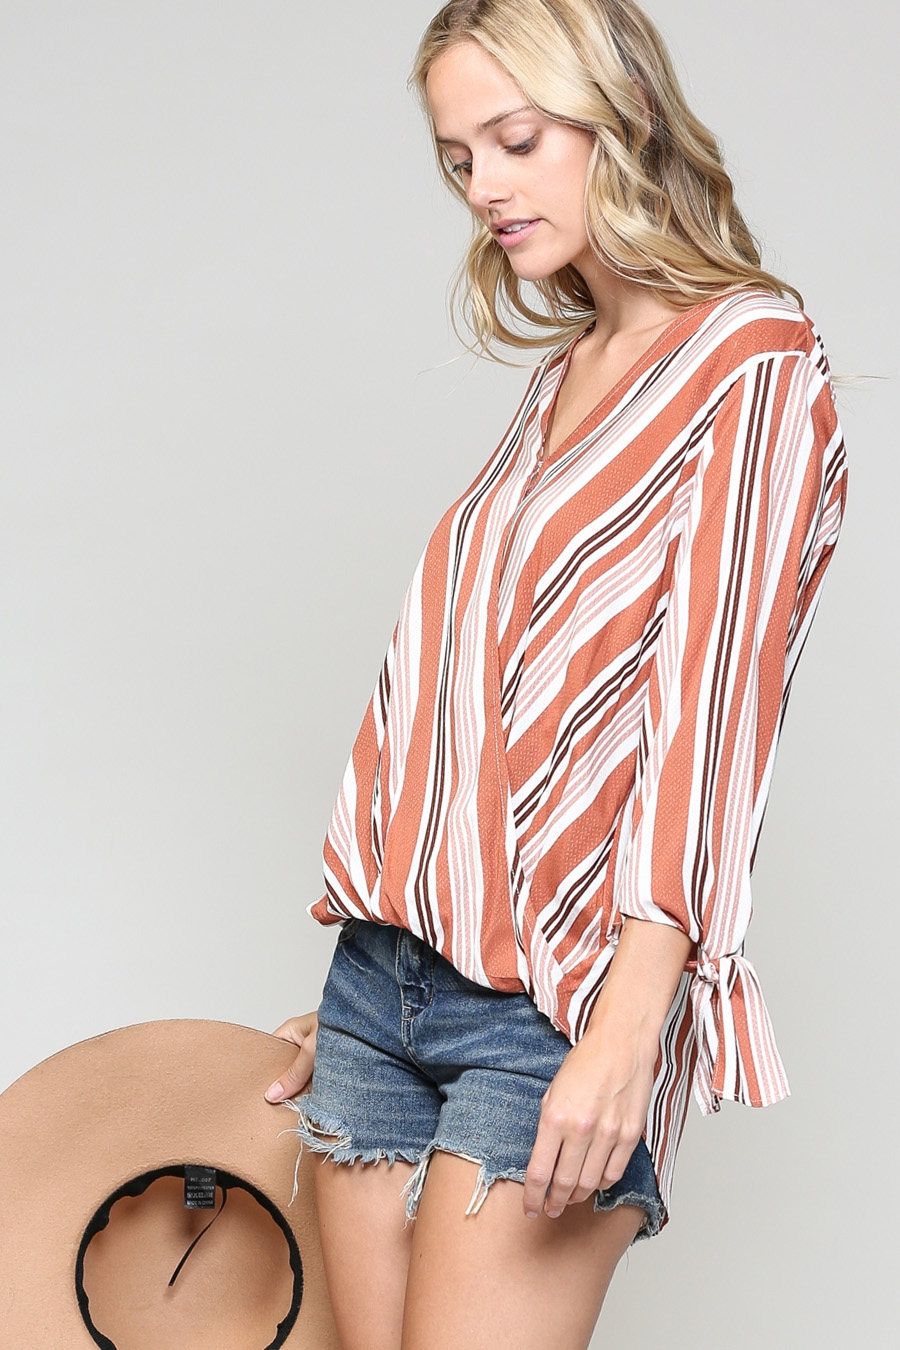 LOOSEFIT STRIPED BLOUSE WITH OVERLAP - orangeshine.com